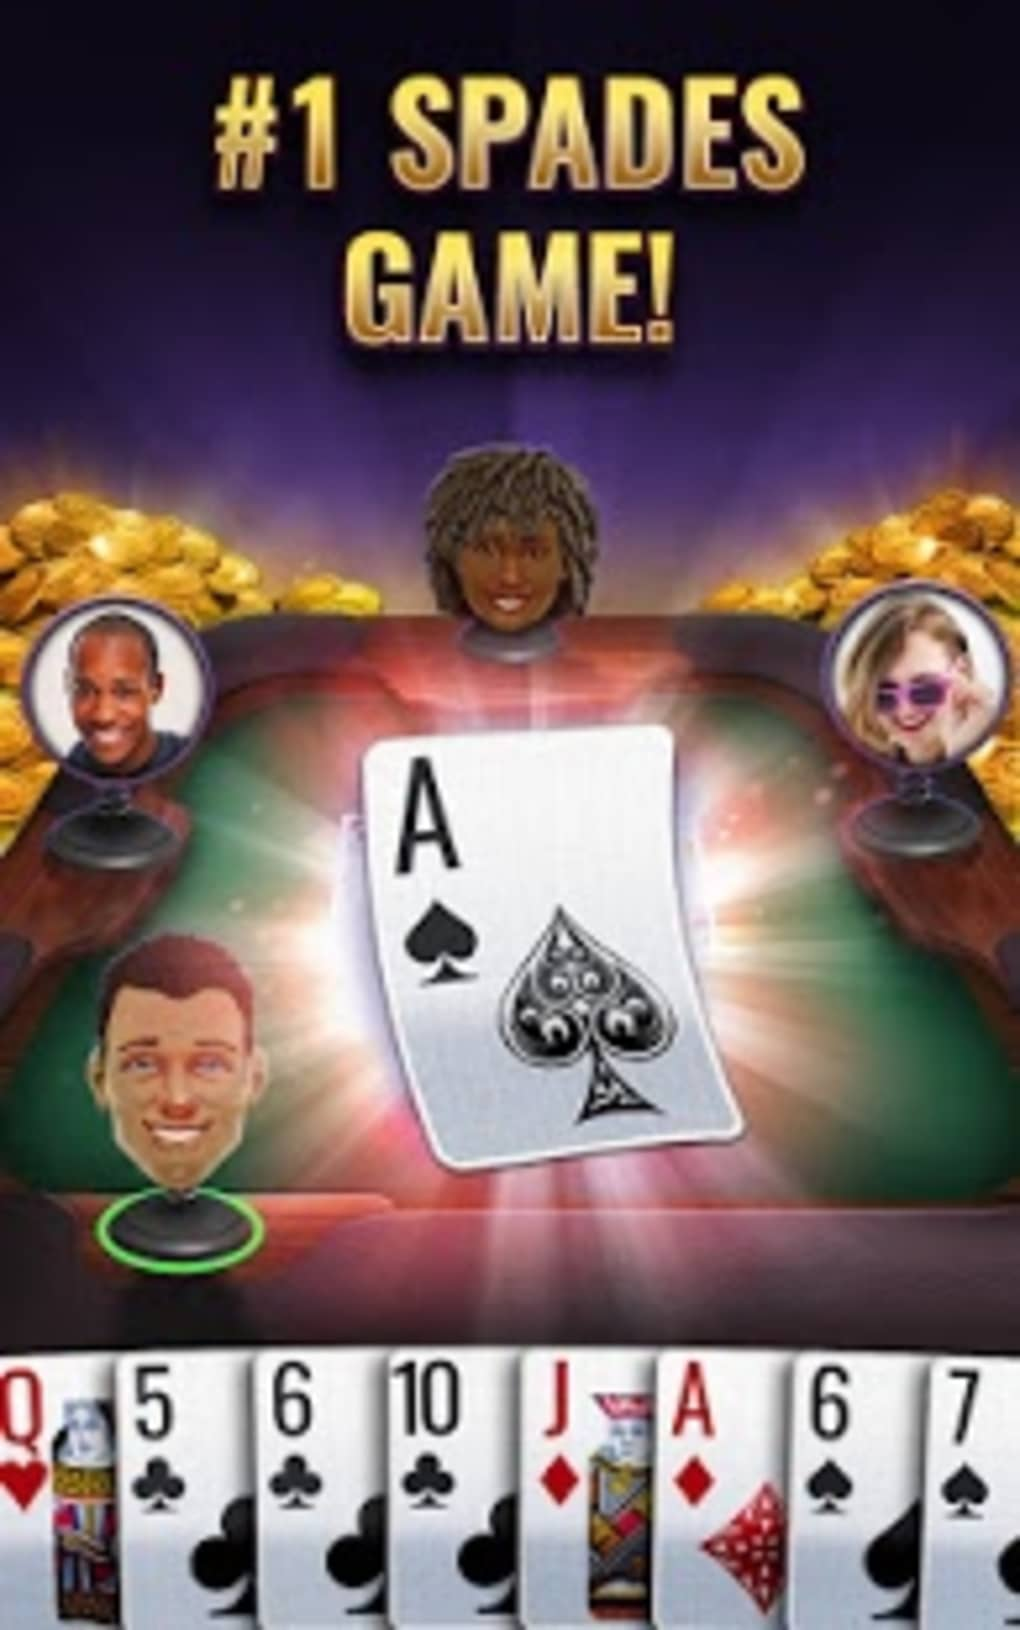 Spades Royale Play Free Spades Cards Game Online APK for Android - Download